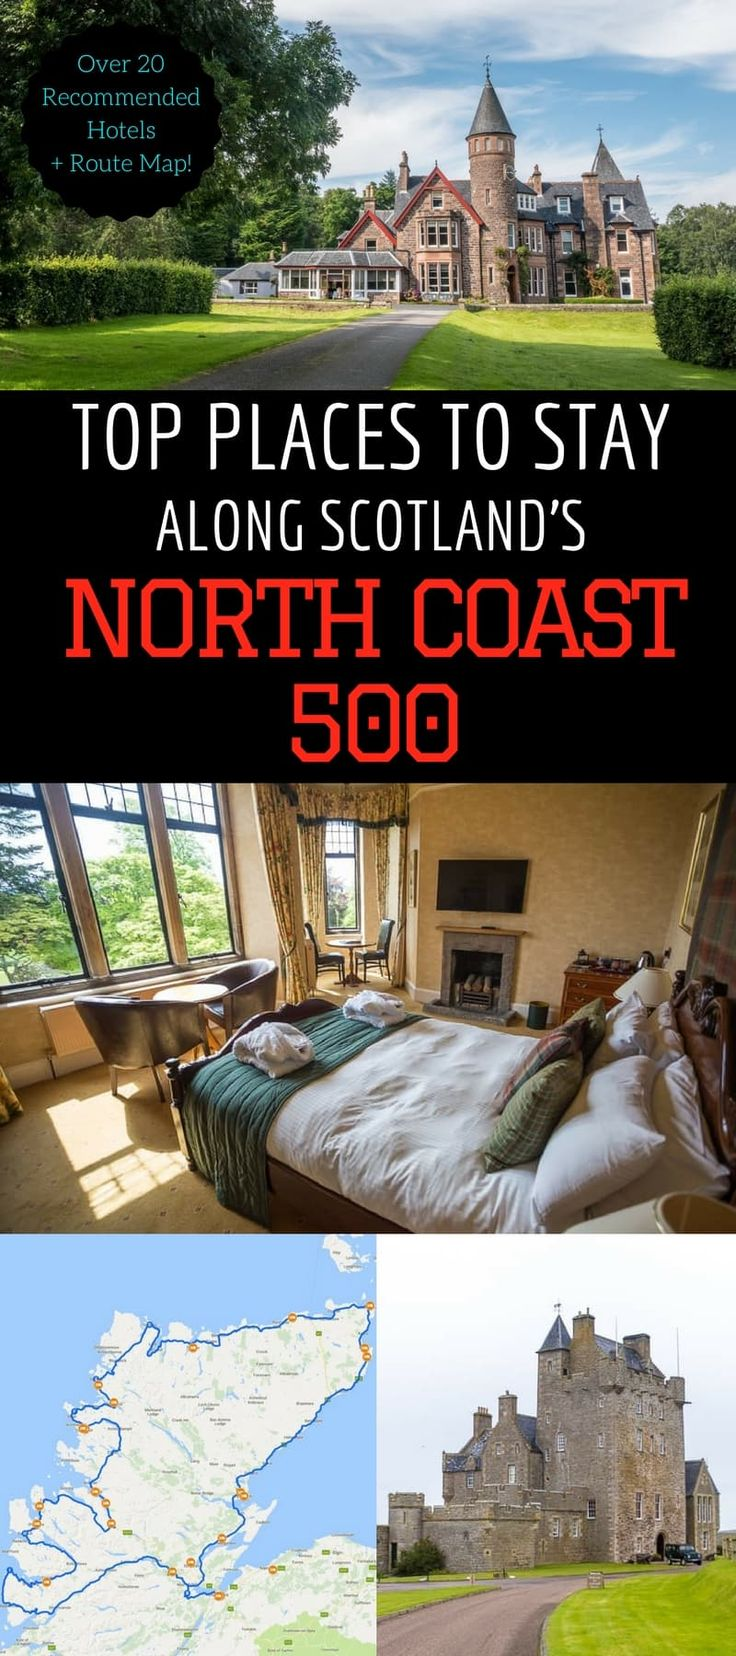 Hotel Guide for the top hotels along Scotland's North Coast 500 - the ultimate Scottish road trip. Over 25 accommodation options which include castle hotels, romantic B&B, historic mansion hotels, luxury hotels, and seaside cottages. Find out where to stay along the NC500 for any budget, includes a map!